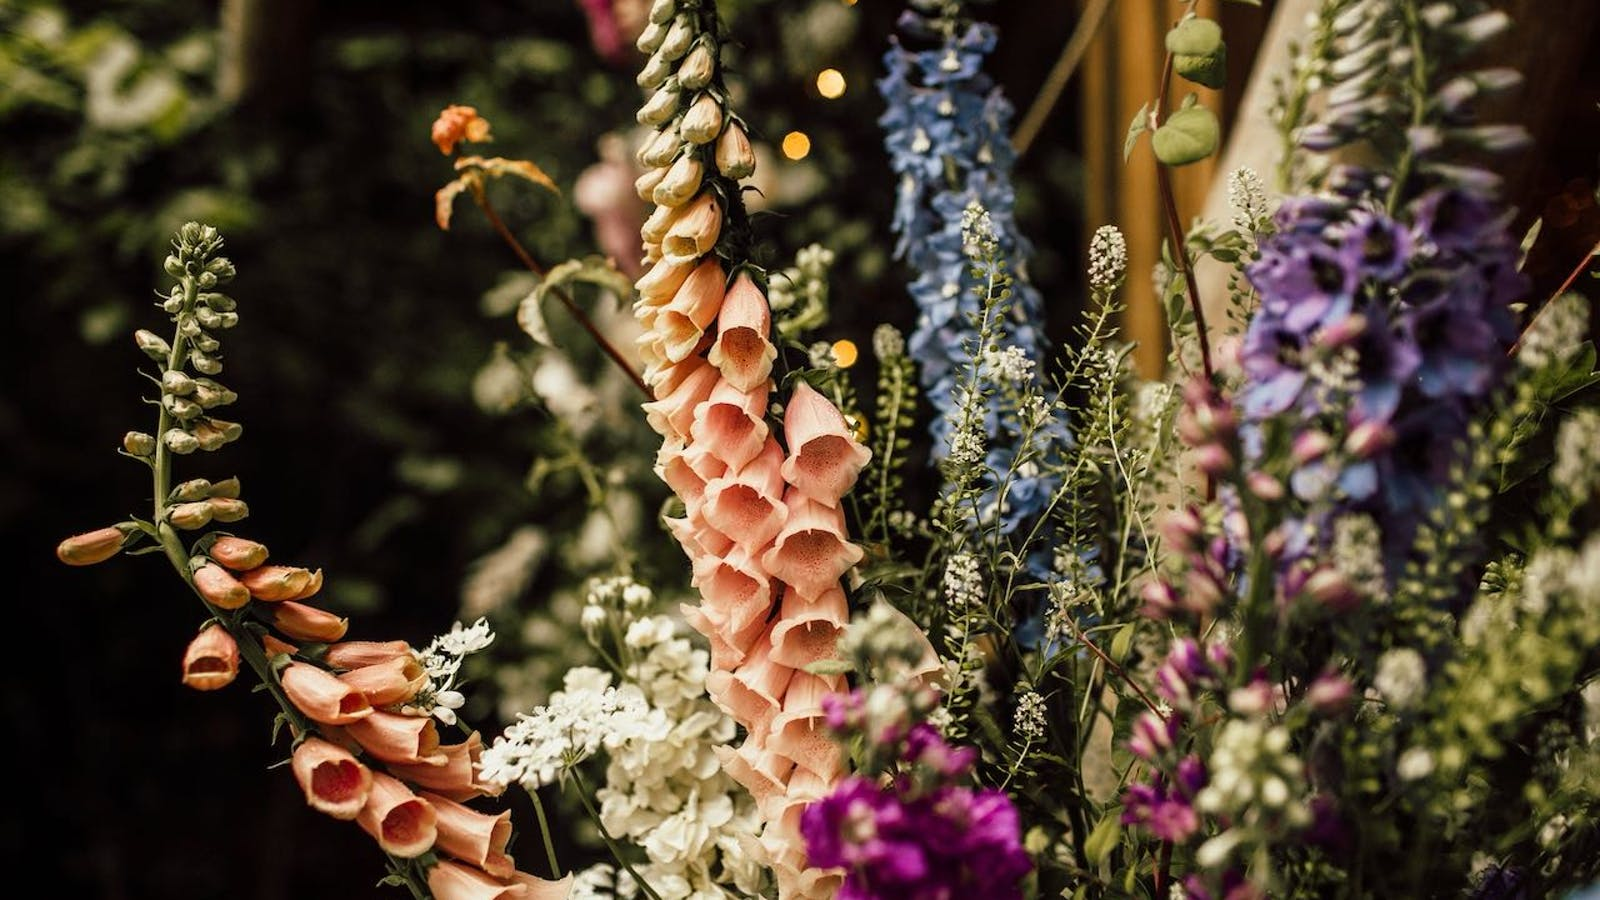 Apricot foxgloves and blue delphiniums